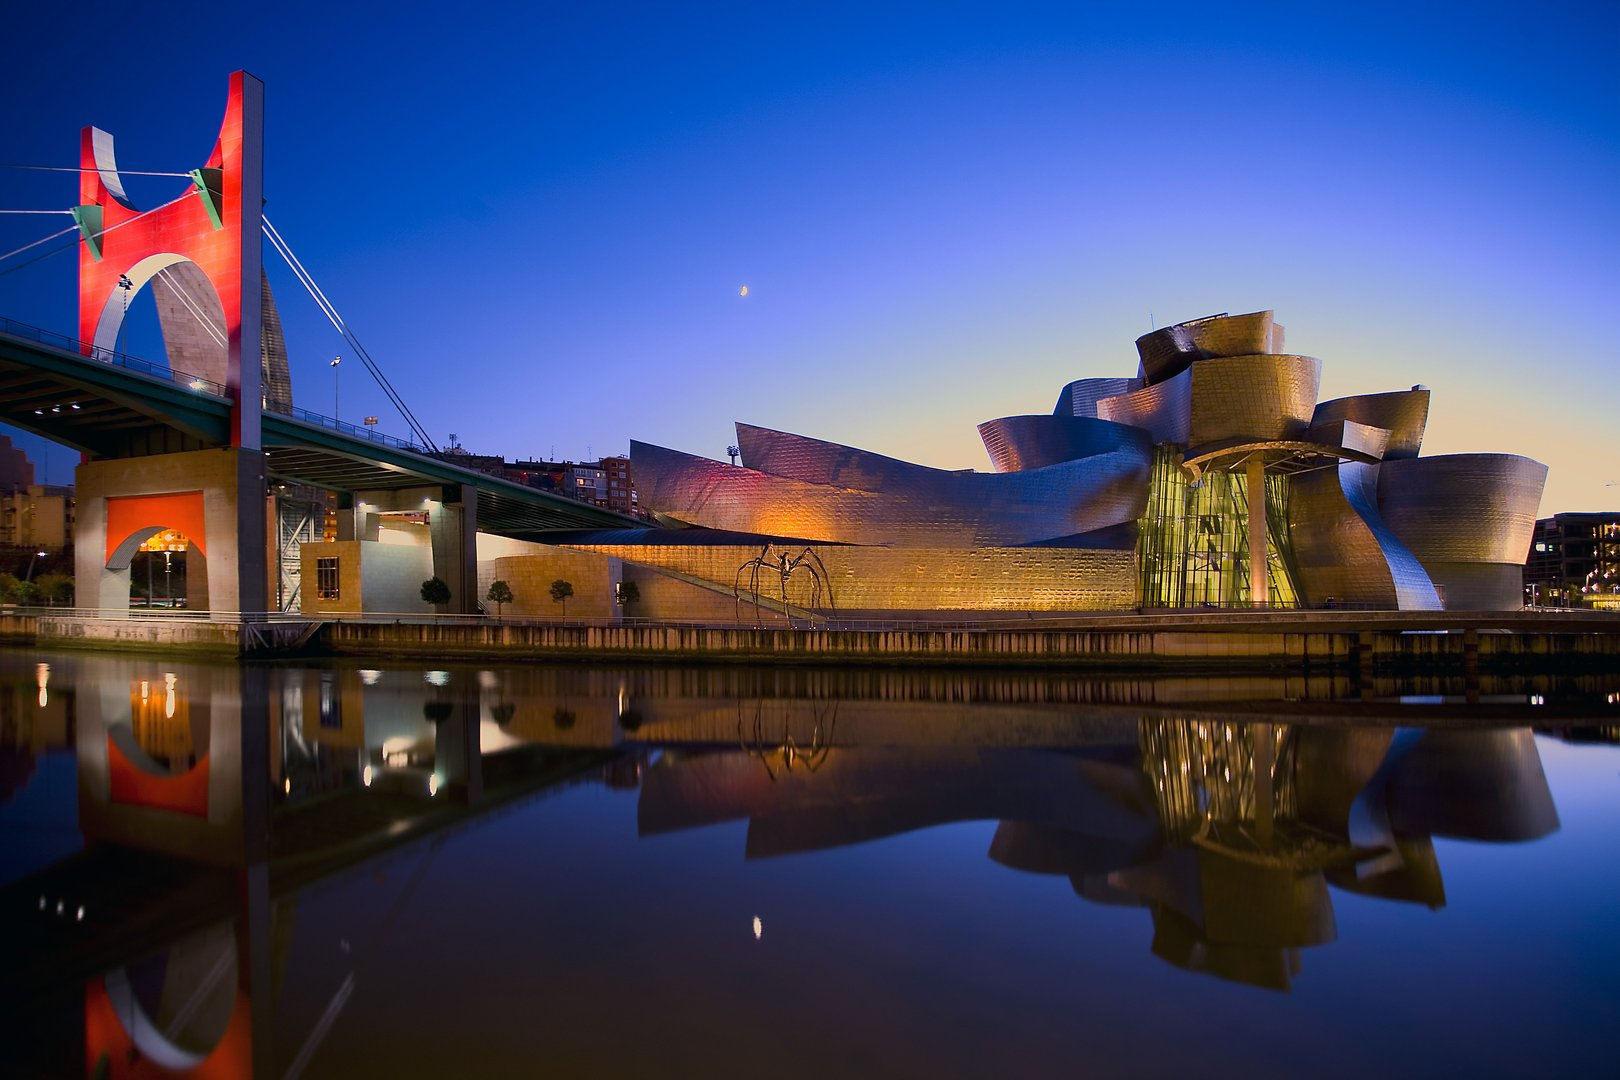 Bilbao-Vitoria: mystery of the Basque country tour.